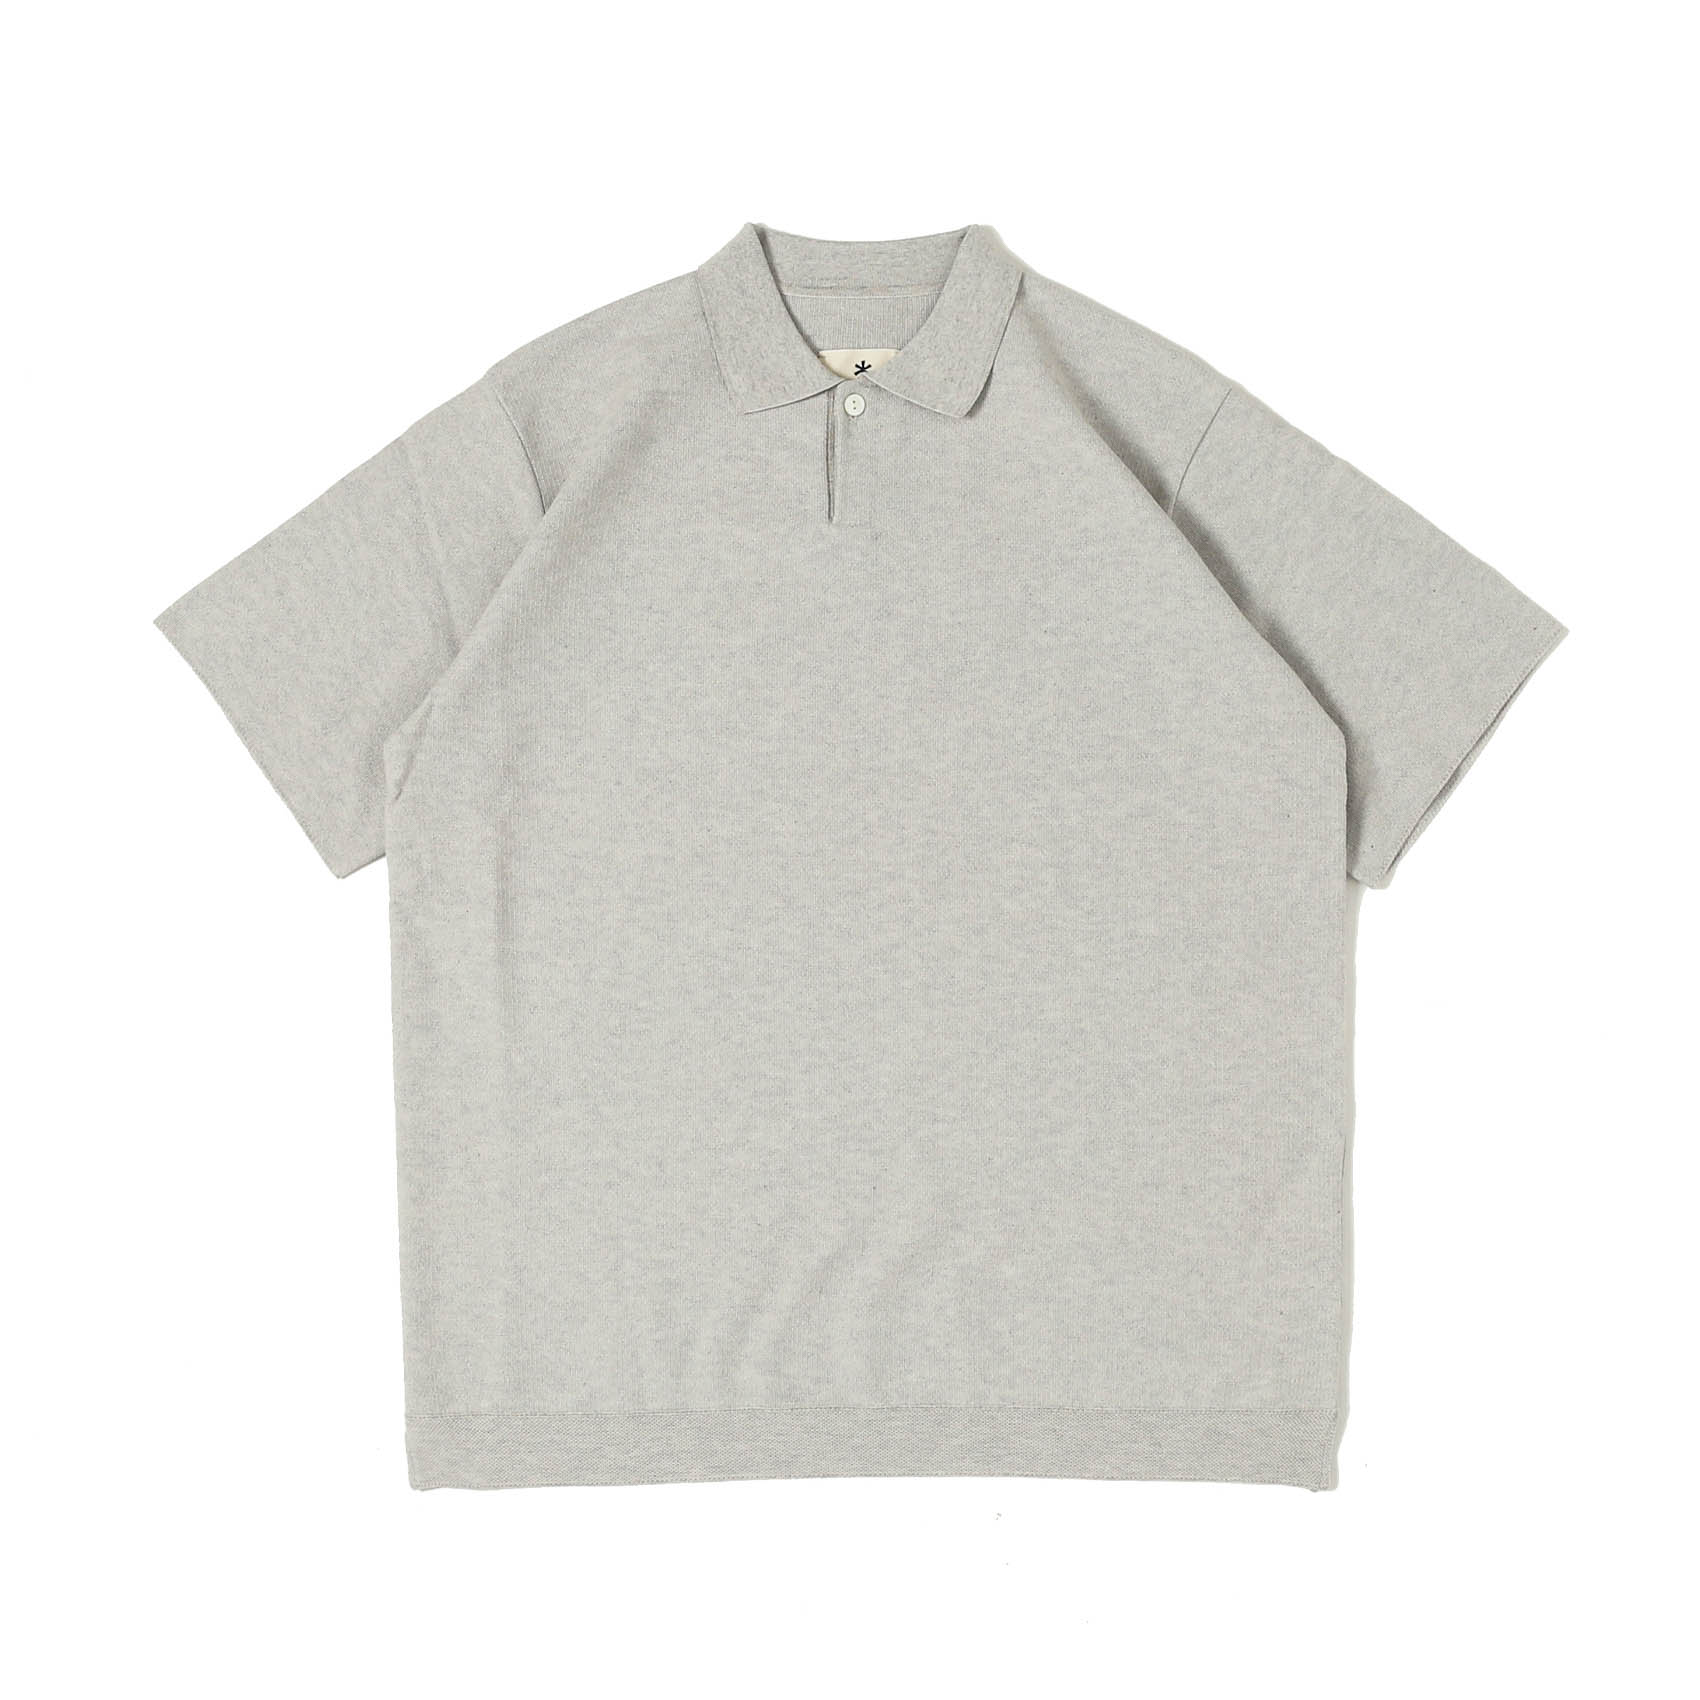 CO/PE DRY POLO SHIRT - GREY